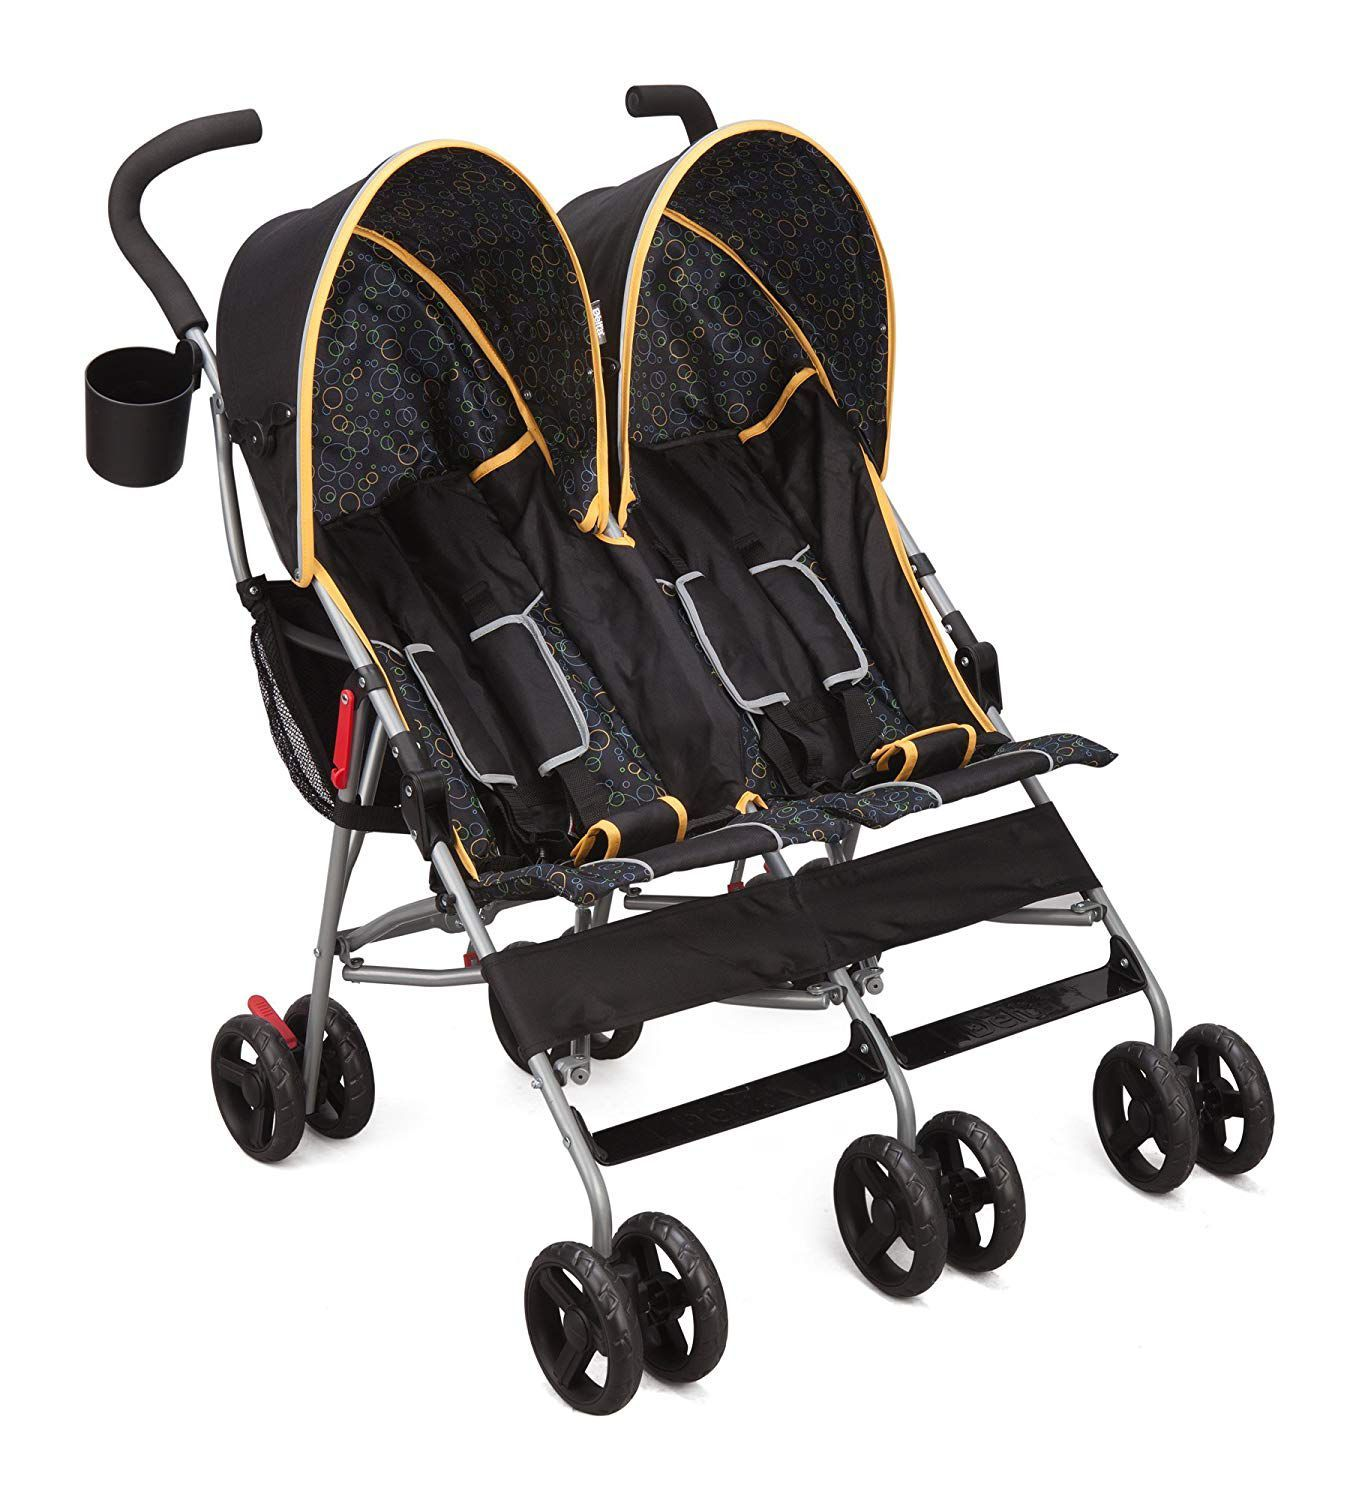 Newborn Baby Buggy Reviews Delta Children City Street Lx Side By Side Stroller